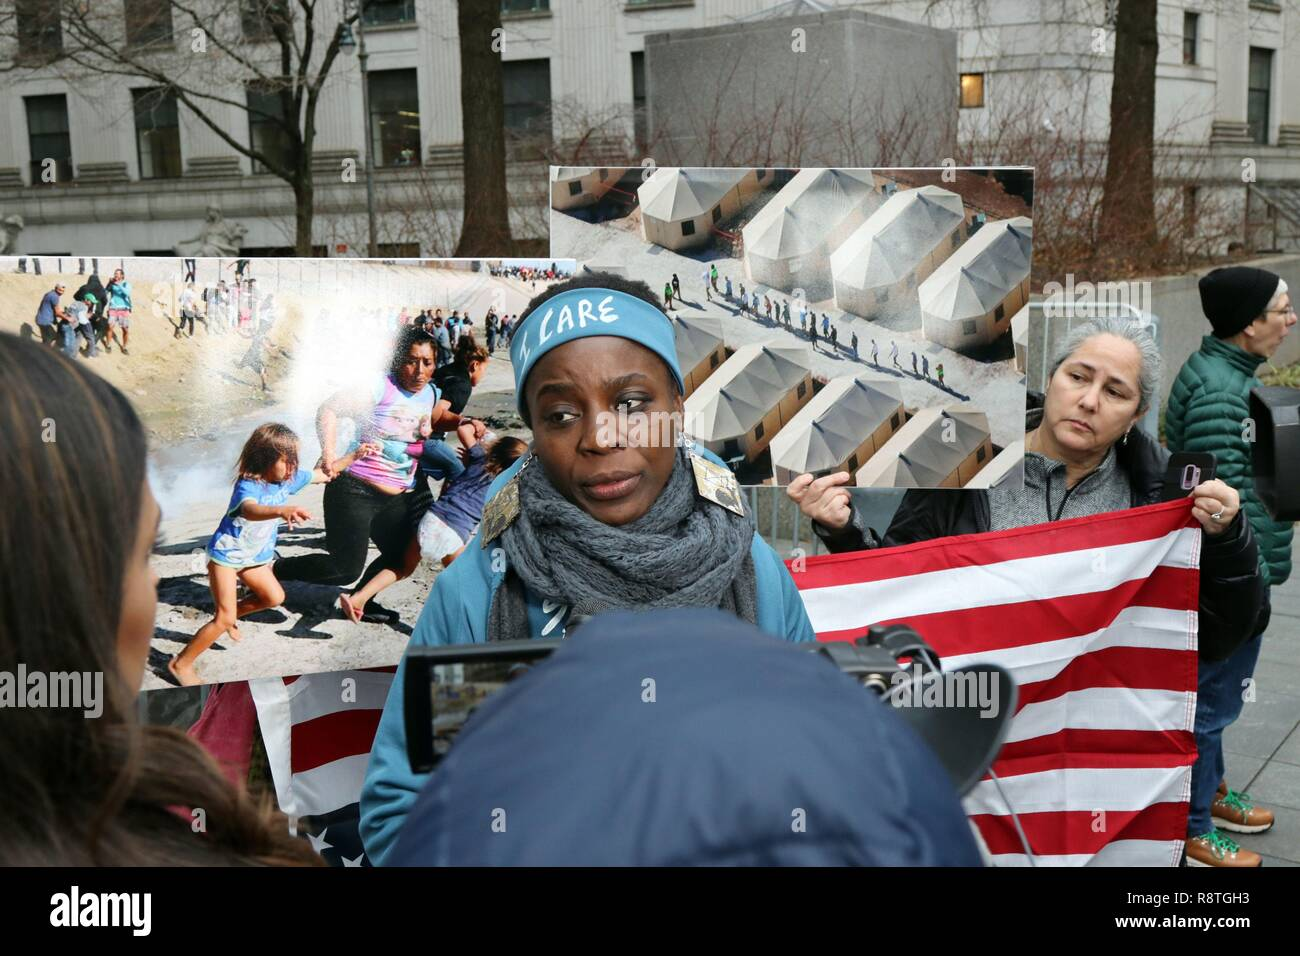 New York, NY, USA. , . Protester THERESE PATRICIA OKOUMOU, 44, who was charged with trespassing, disorderly conduct and interfering with government functions after partially climbing the Statue of Liberty monument on July 4, 2018, was found guilty on all charges in the U.S. Federal Court in lower Manhattan on 17 December 2018. The Congolese-born US naturalized-citizen, will be sentenced on 5 March 2019 and faces up to 6 months of jail on each of three different charges. © 2018 Credit: G. Ronald Lopez/Alamy Live News Stock Photo